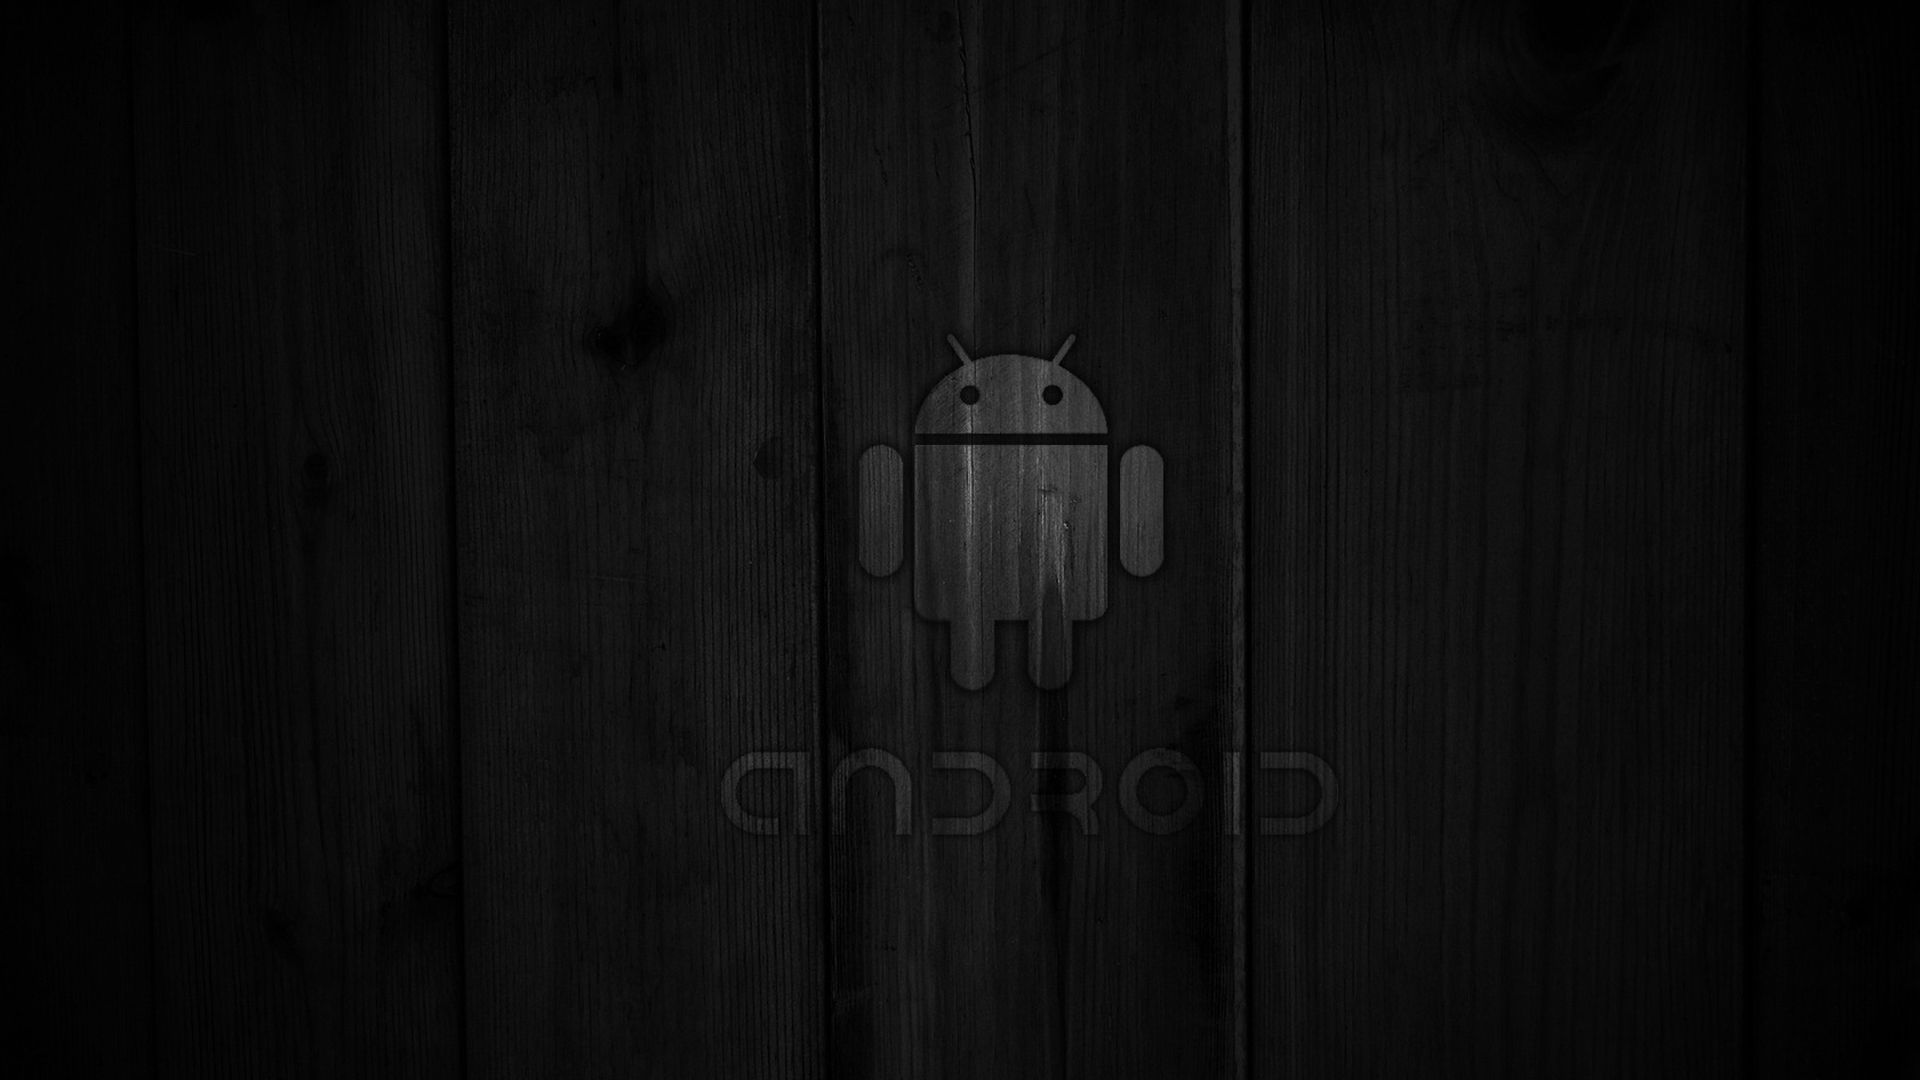 HD Black Wallpaper For Android